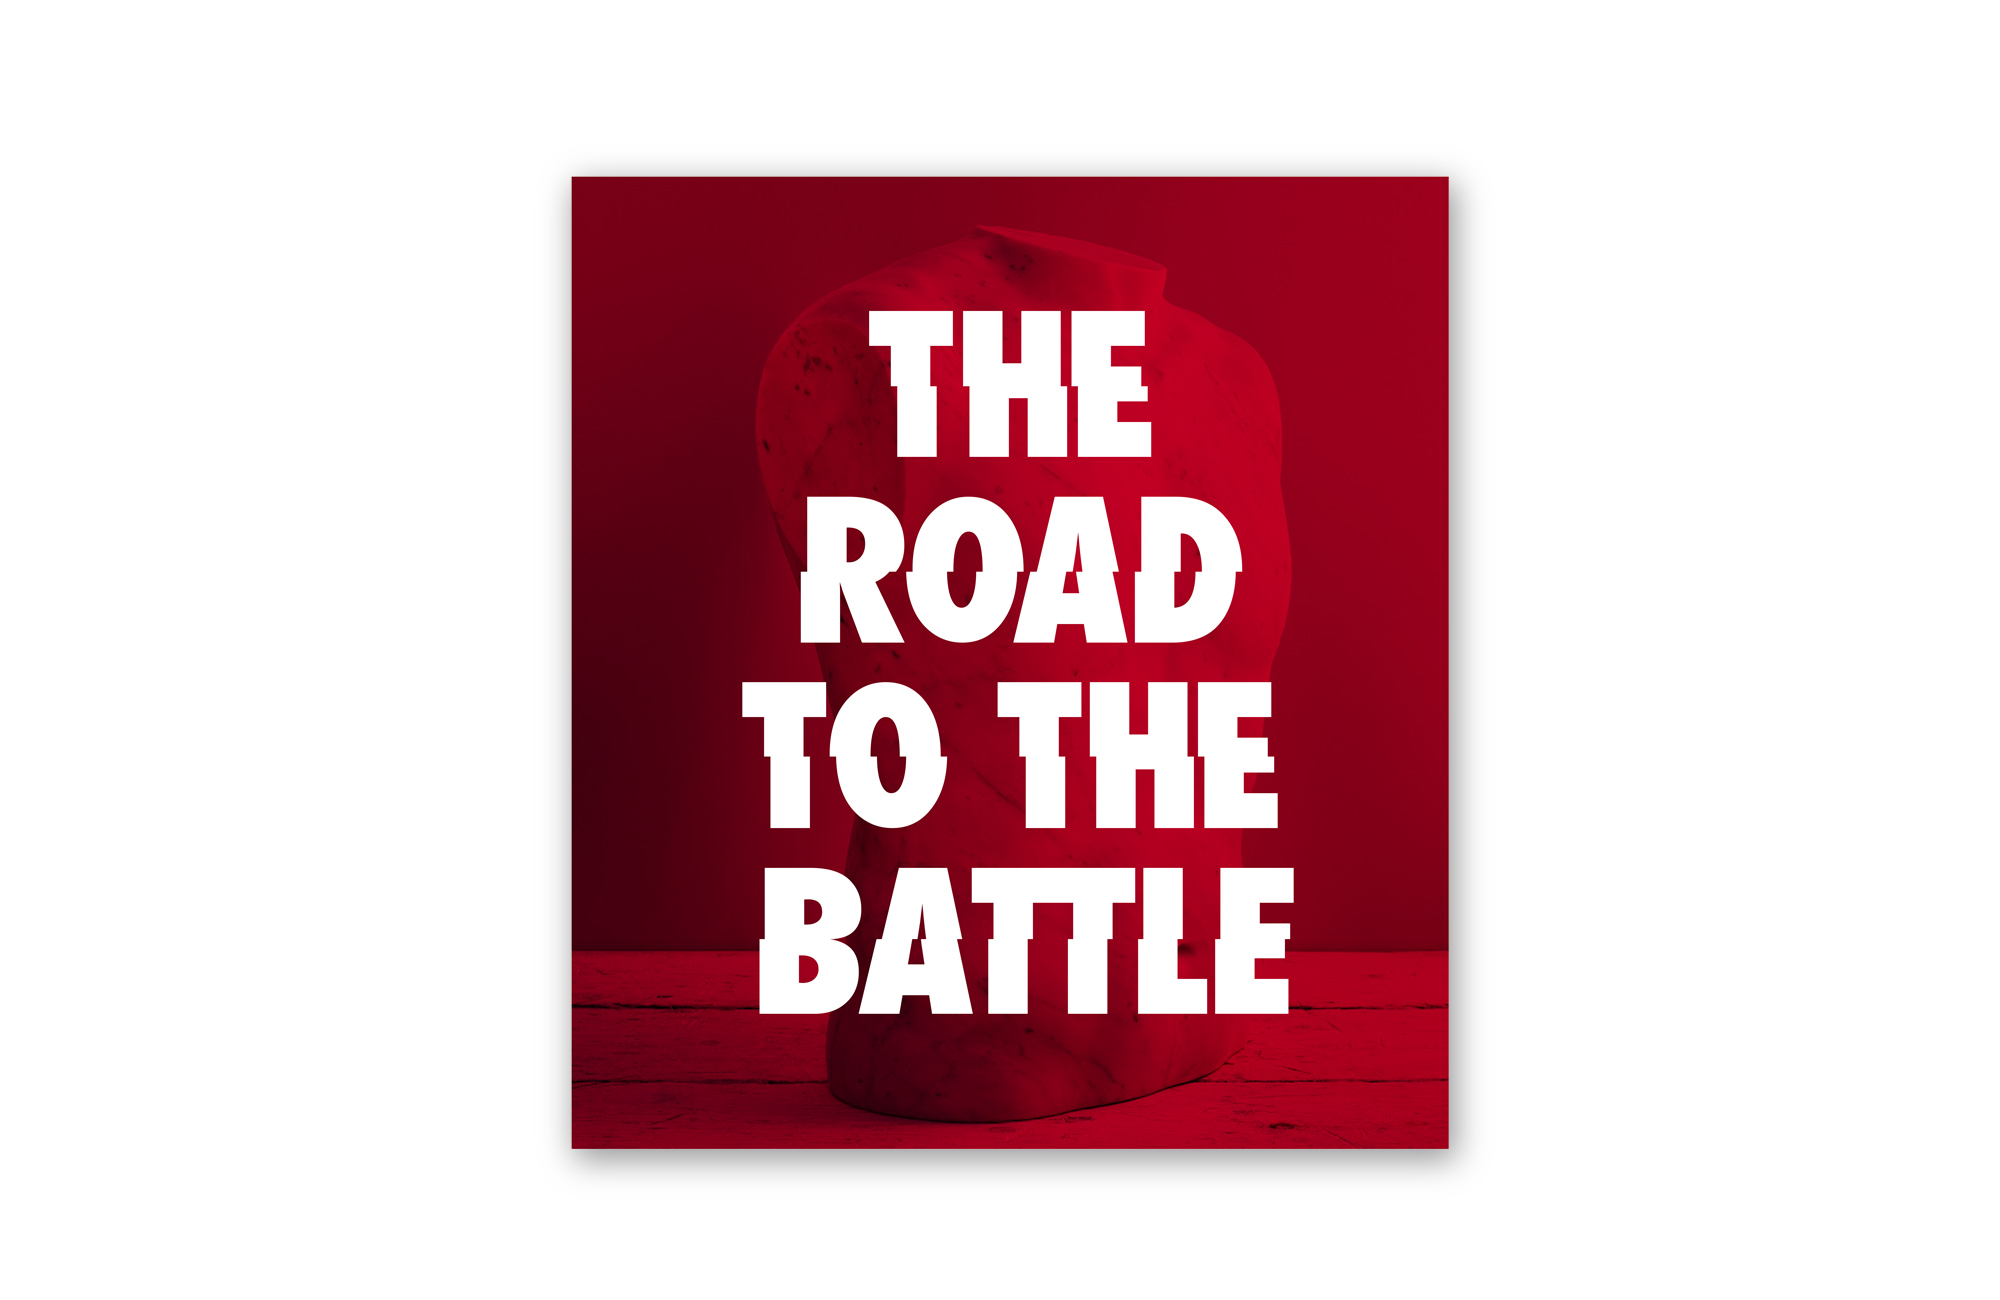 Cover image: The Road To The Battle (2014)